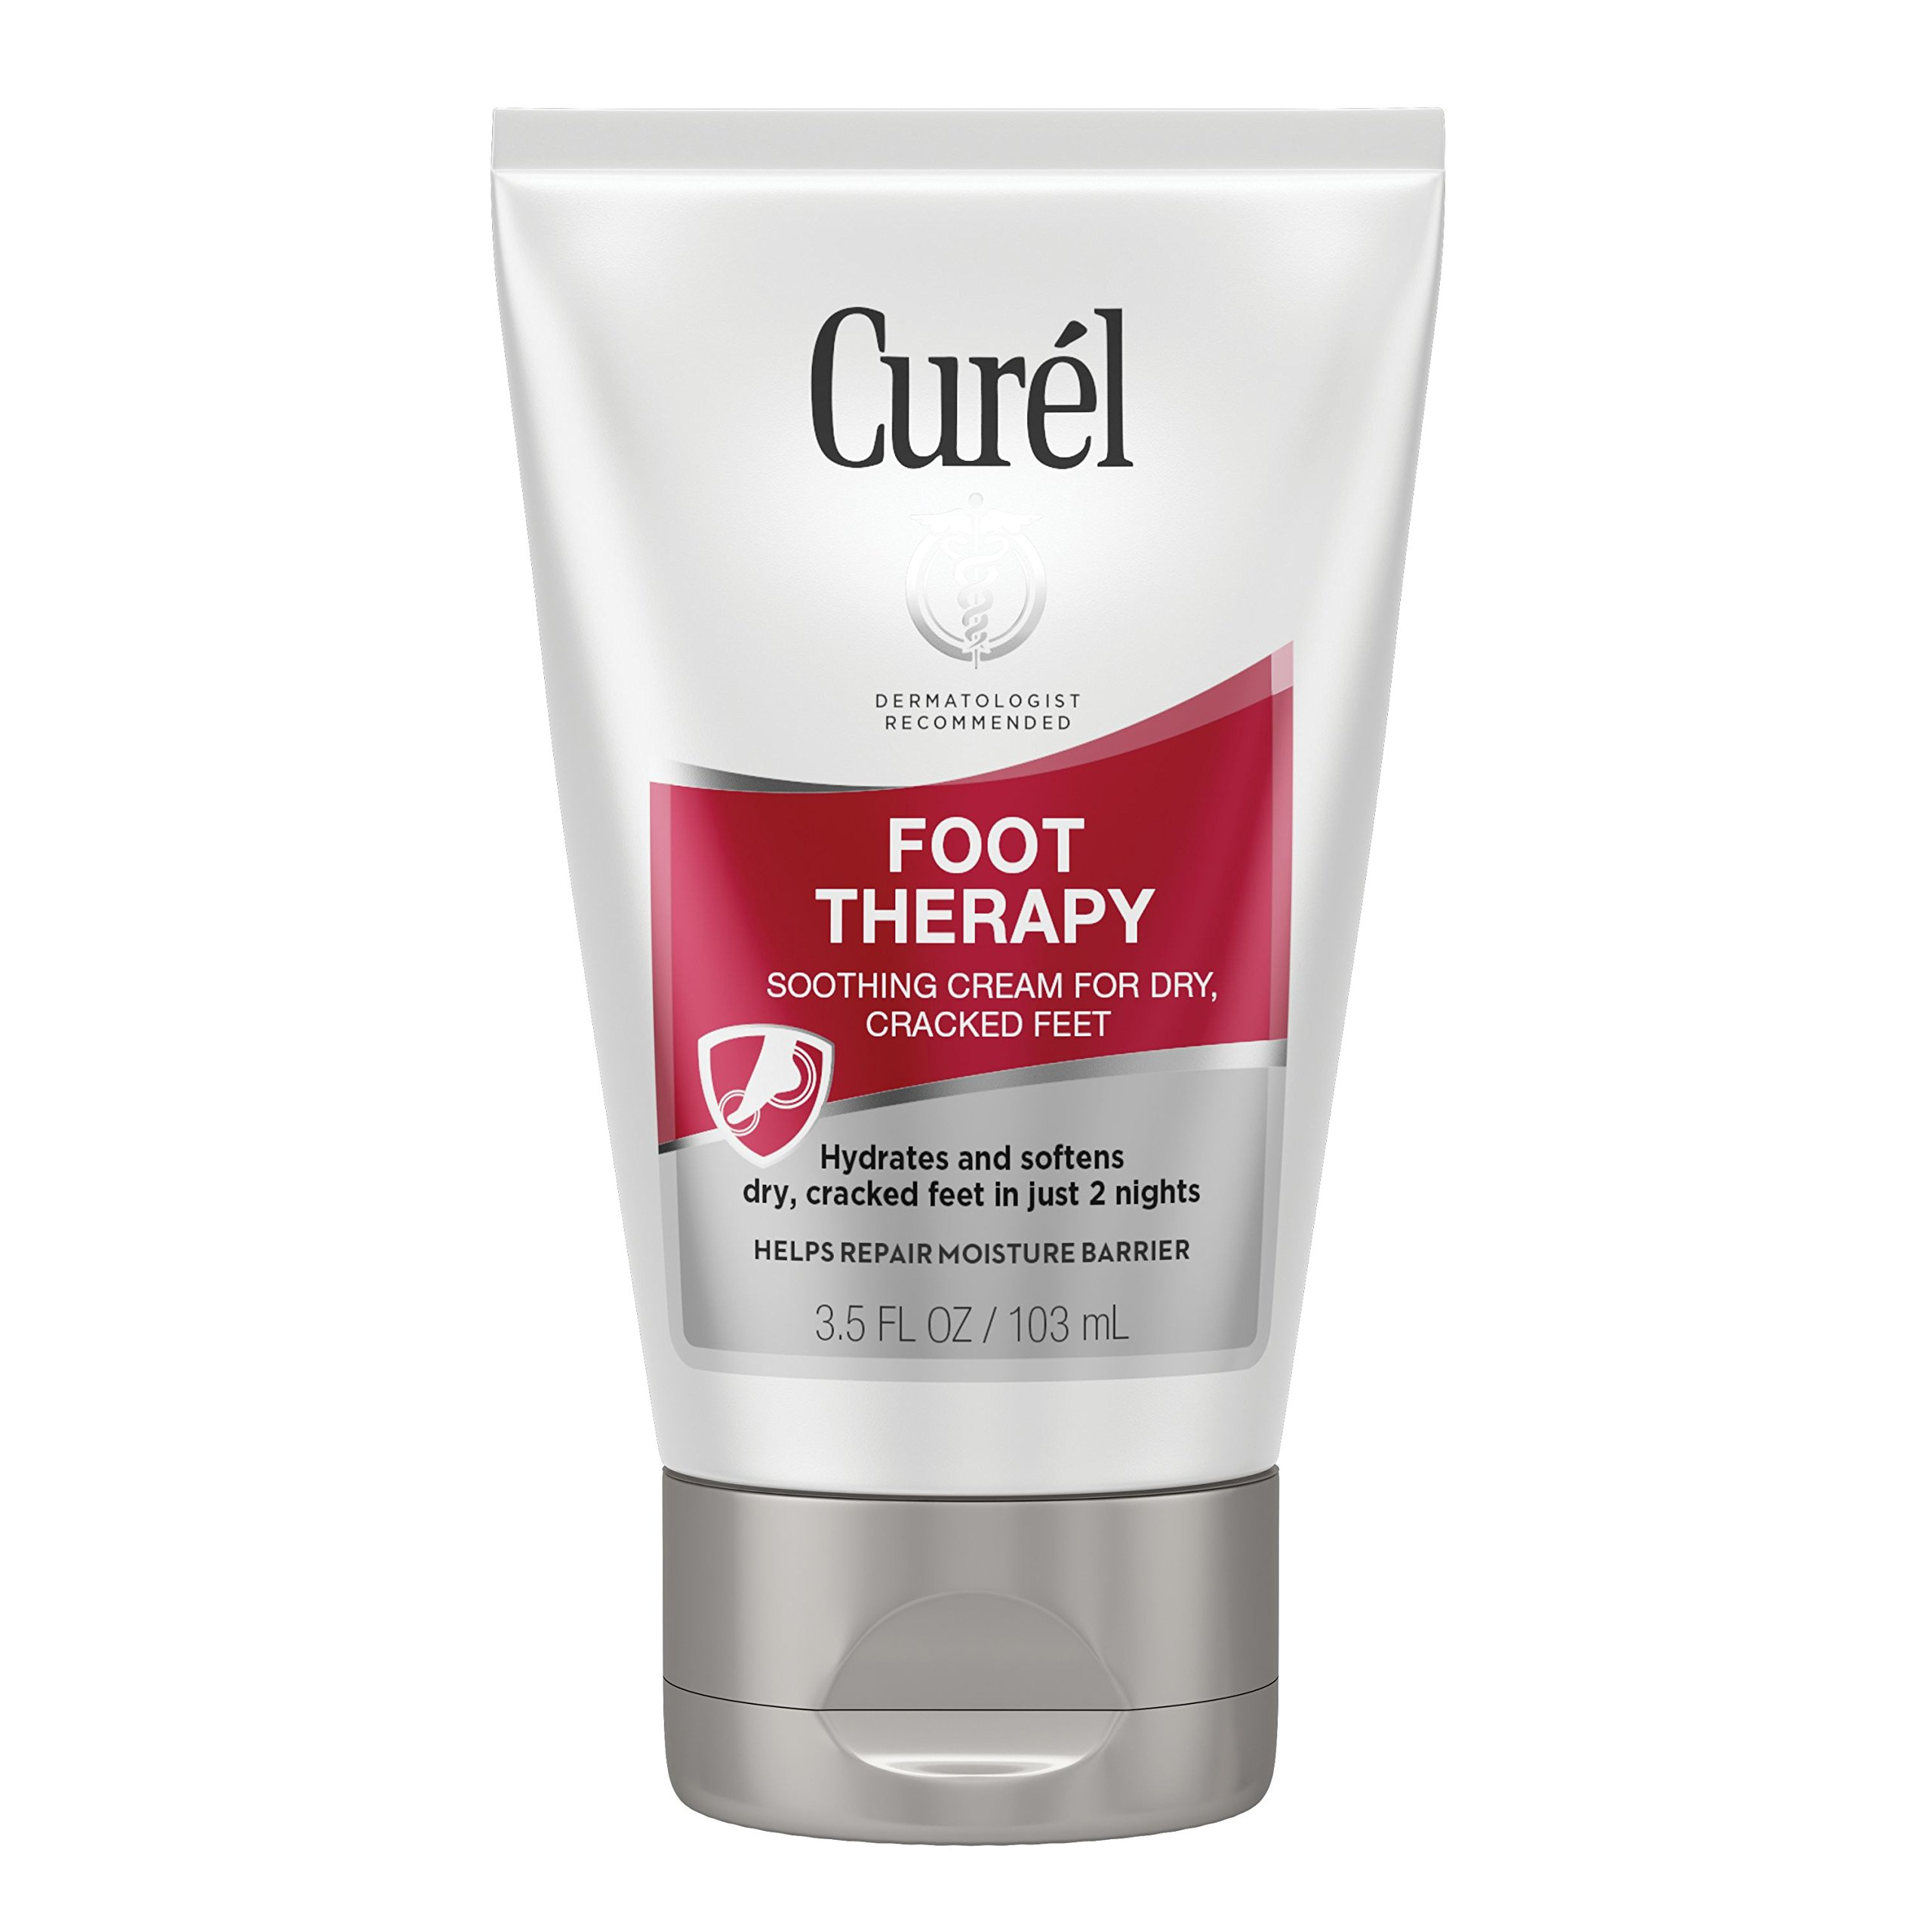 Curél Foot Therapy Cream, Soothing Lotion for Dry, Callused Feet and Cracked Heels, Quick Absorbing, Humectant Moisturizer, 3.5 Ounce, with Shea Butter, Coconut Milk, and Vitamin E